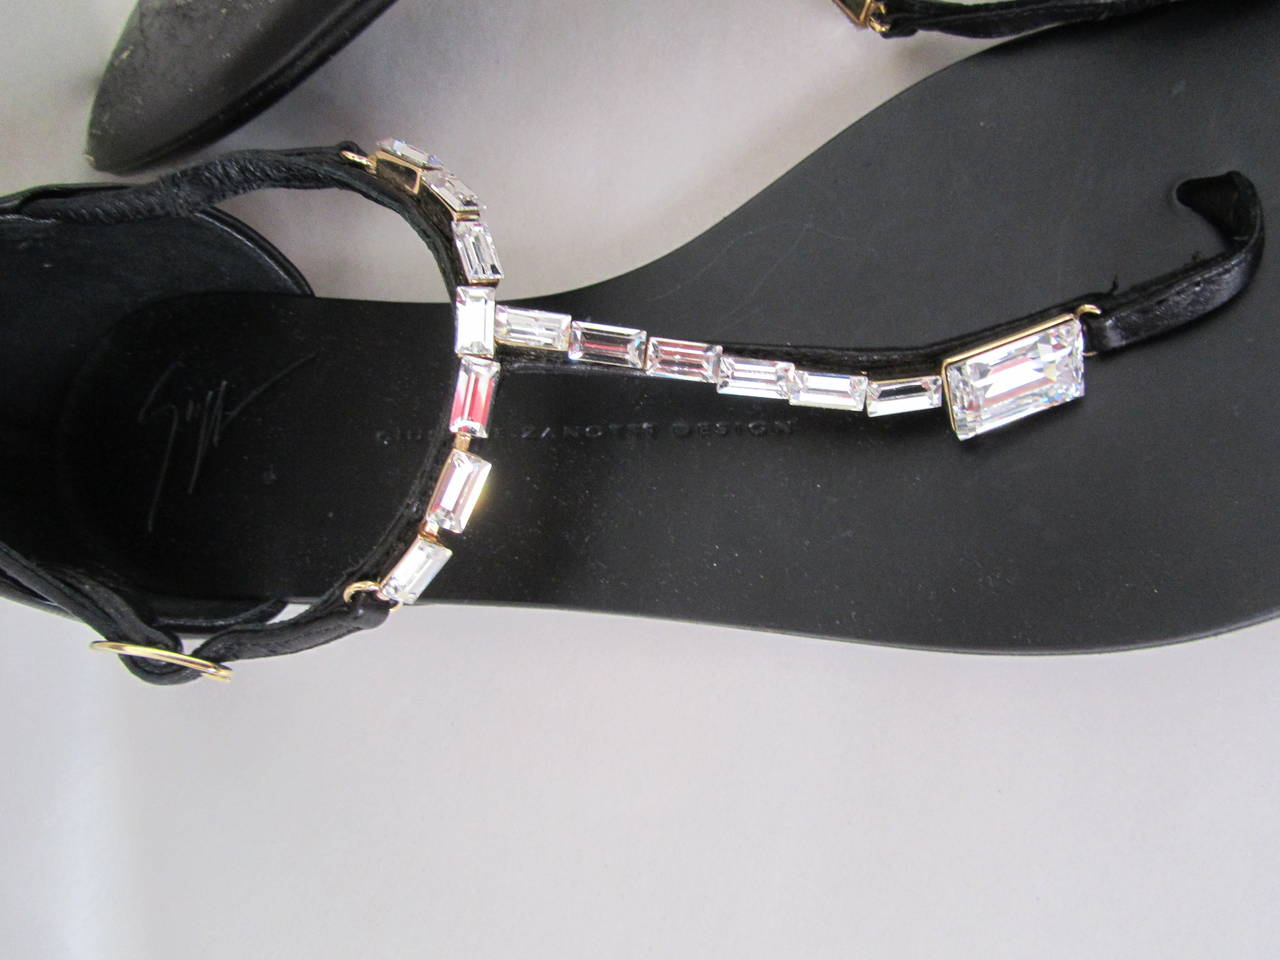 Giuseppe Zanotti Strap Sandals - Size 37 - Black with Rhinestones For Sale 2